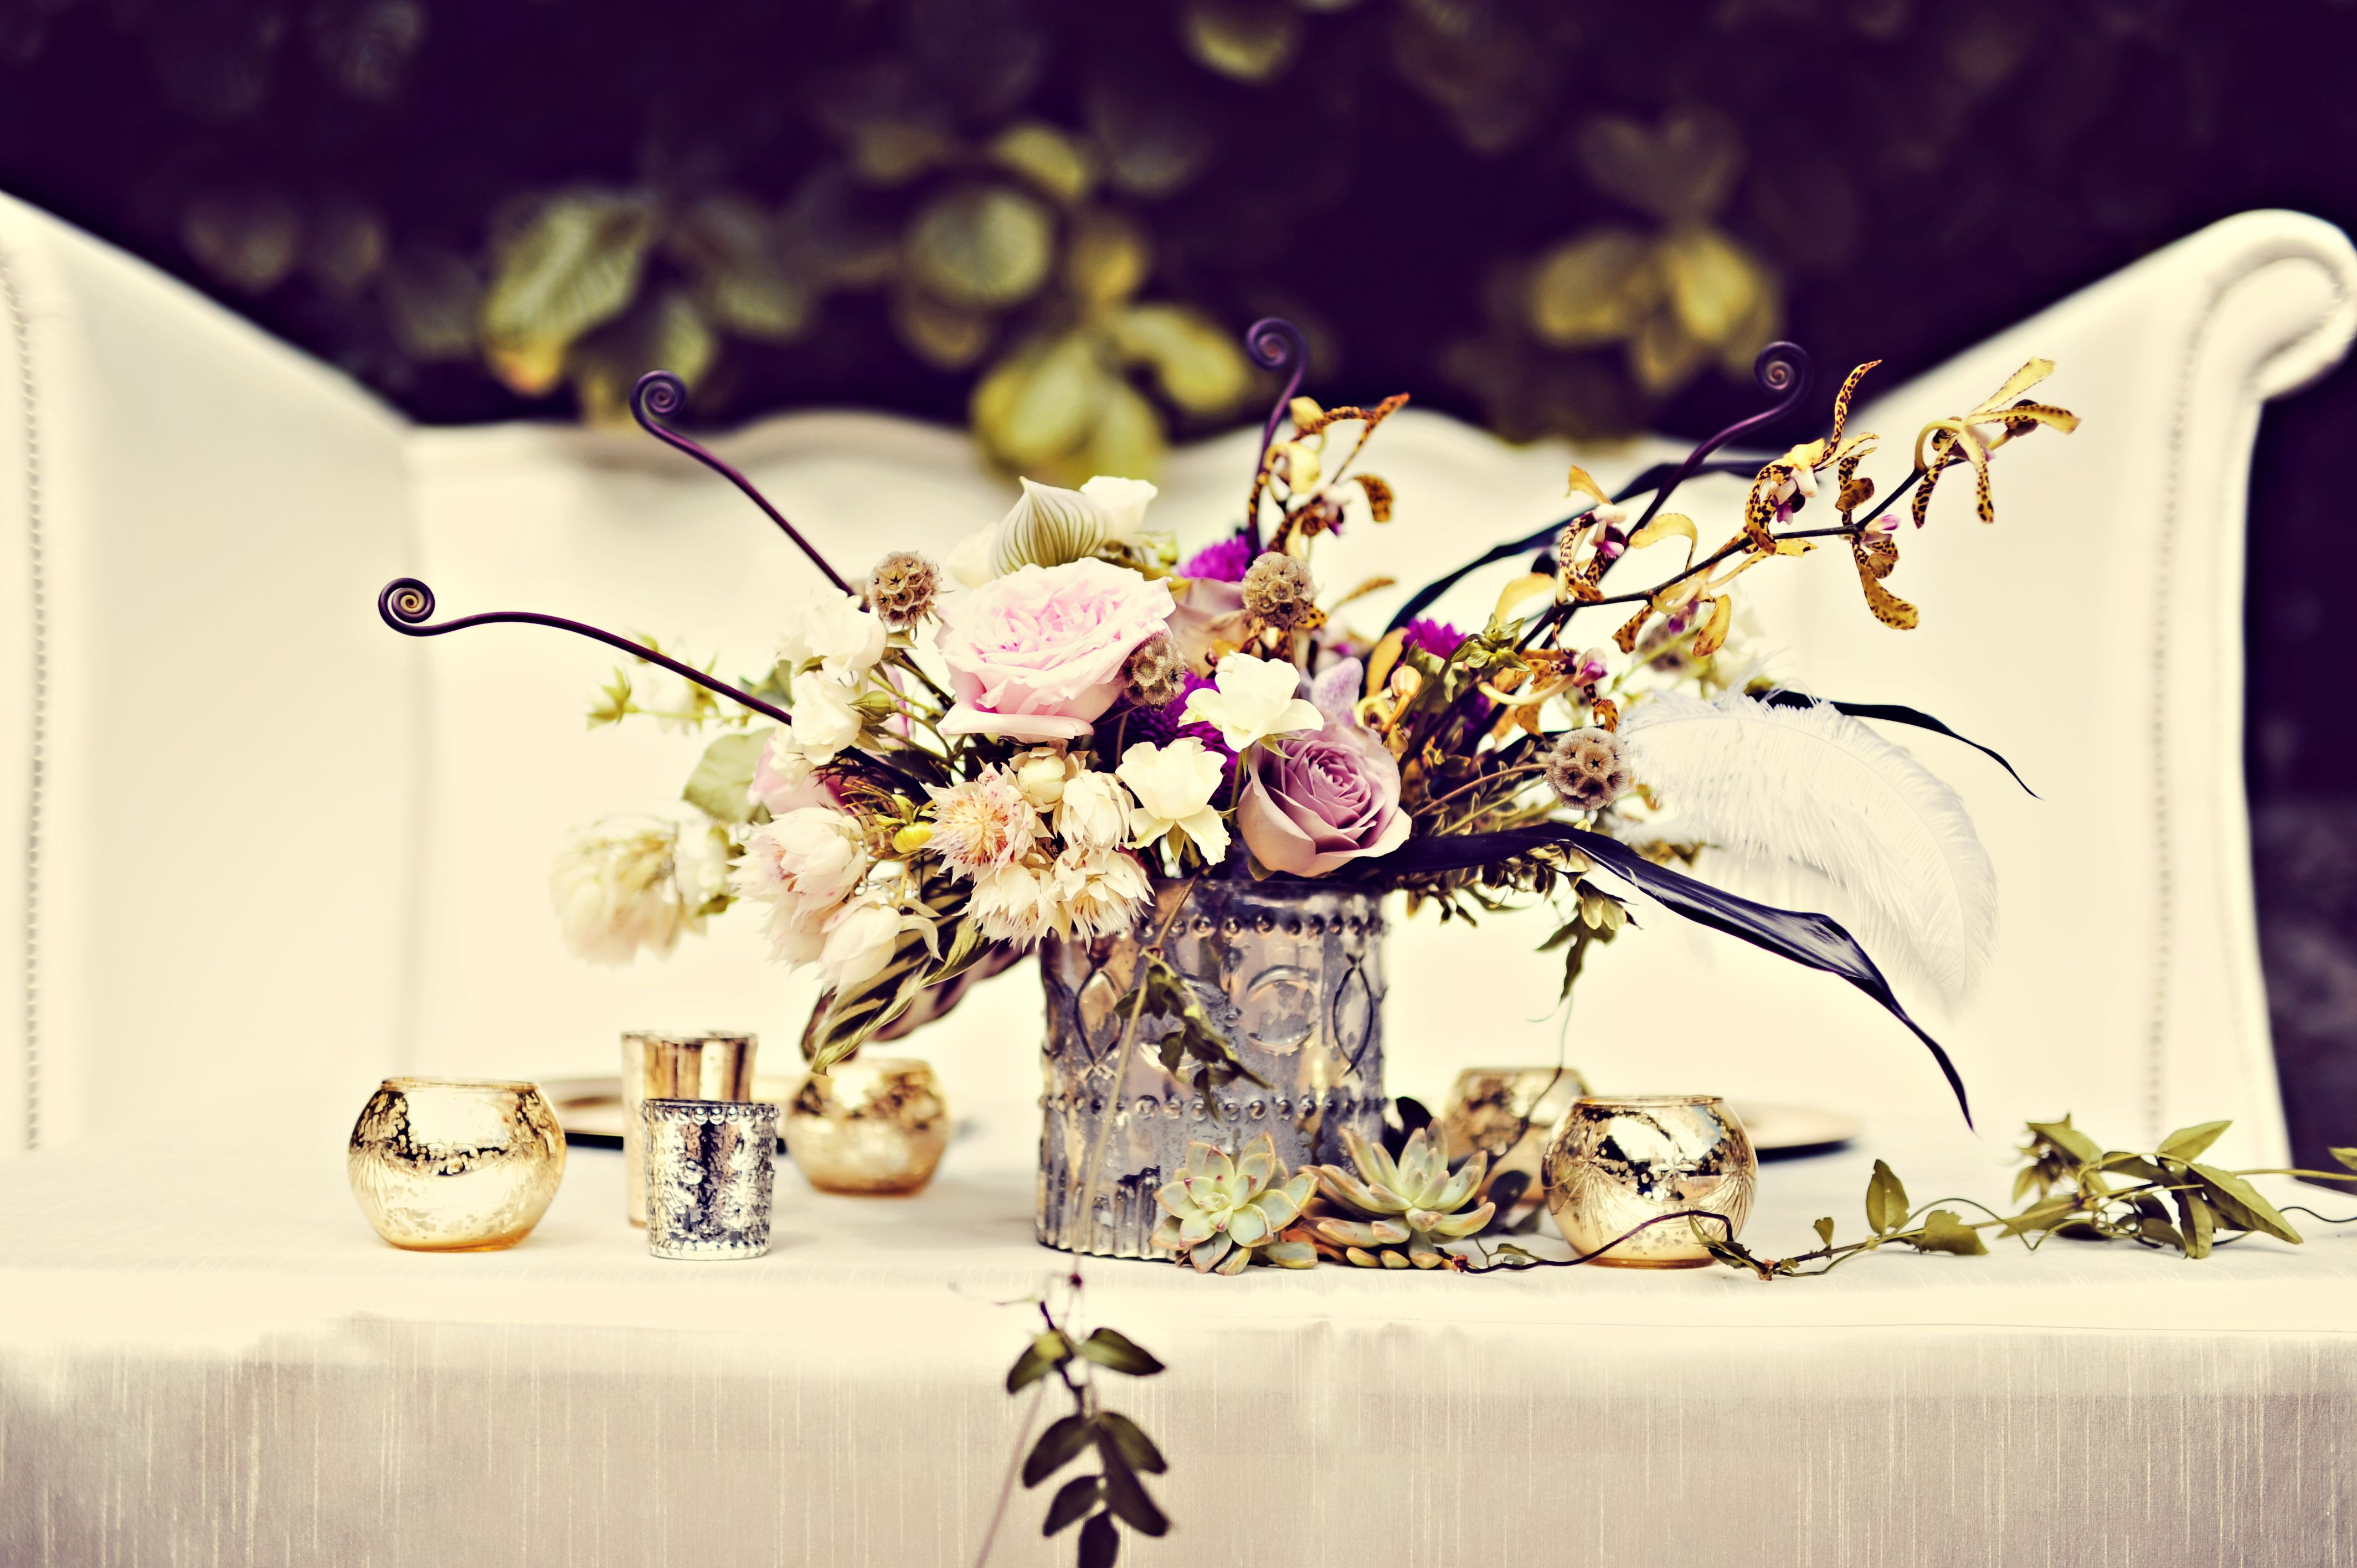 Stunning flowers and art decor at this reception